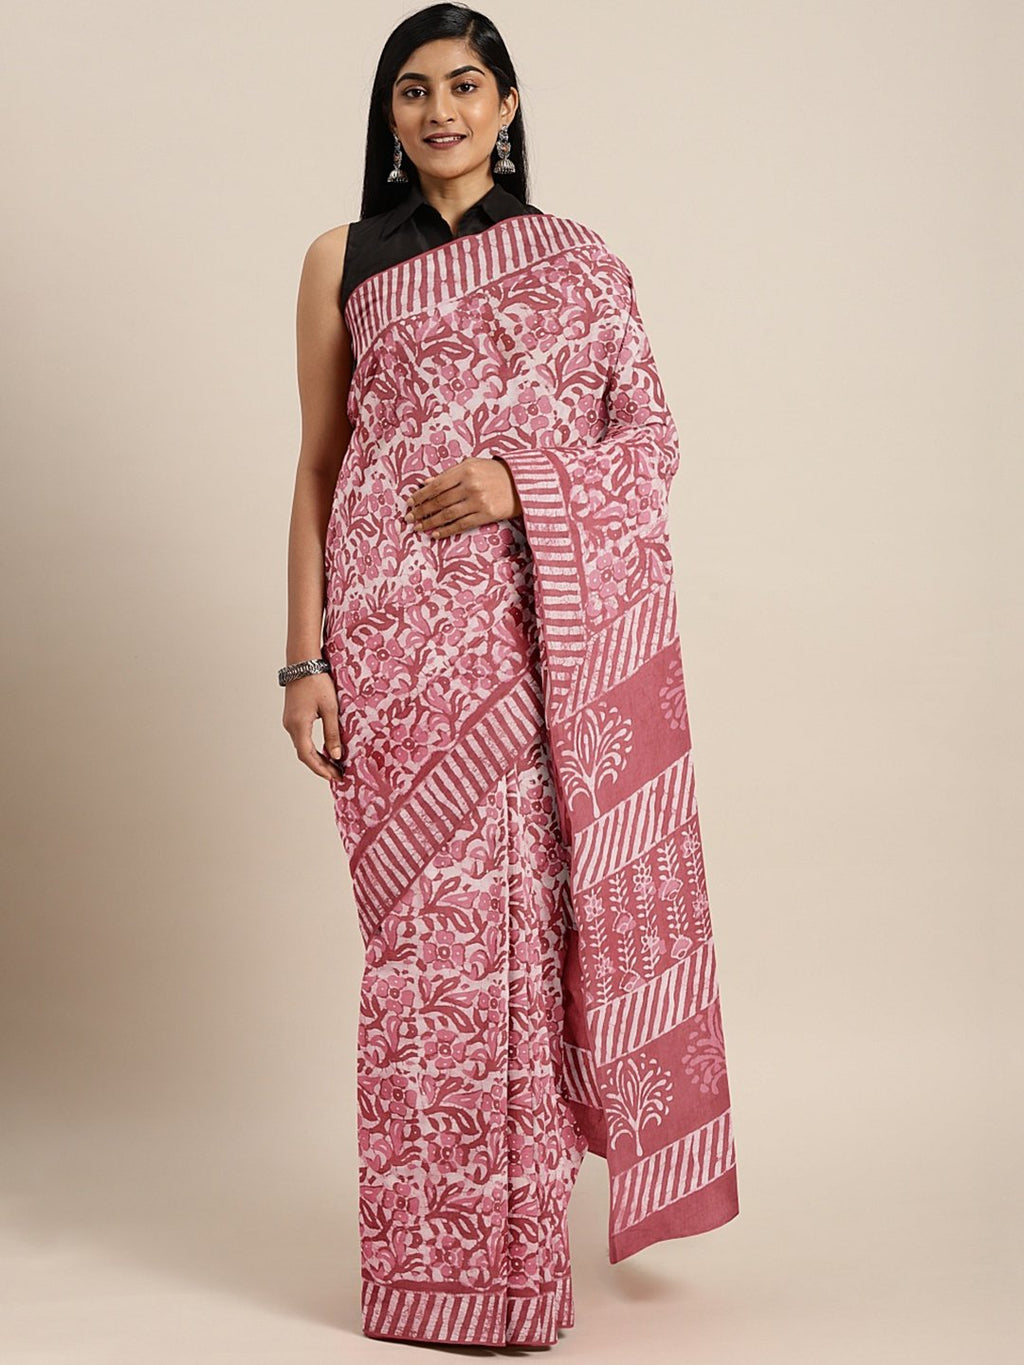 Pink Off-White Dabu Handblock Print Bagru Saree-Saree-Kalakari India-BHKPSA0073-Cotton, Dabu, Geographical Indication, Hand Blocks, Hand Crafted, Heritage Prints, Indigo, Natural Dyes, Sarees, Sustainable Fabrics-[Linen,Ethnic,wear,Fashionista,Handloom,Handicraft,Indigo,blockprint,block,print,Cotton,Chanderi,Blue, latest,classy,party,bollywood,trendy,summer,style,traditional,formal,elegant,unique,style,hand,block,print, dabu,booti,gift,present,glamorous,affordable,collectible,Sari,Saree,printed,